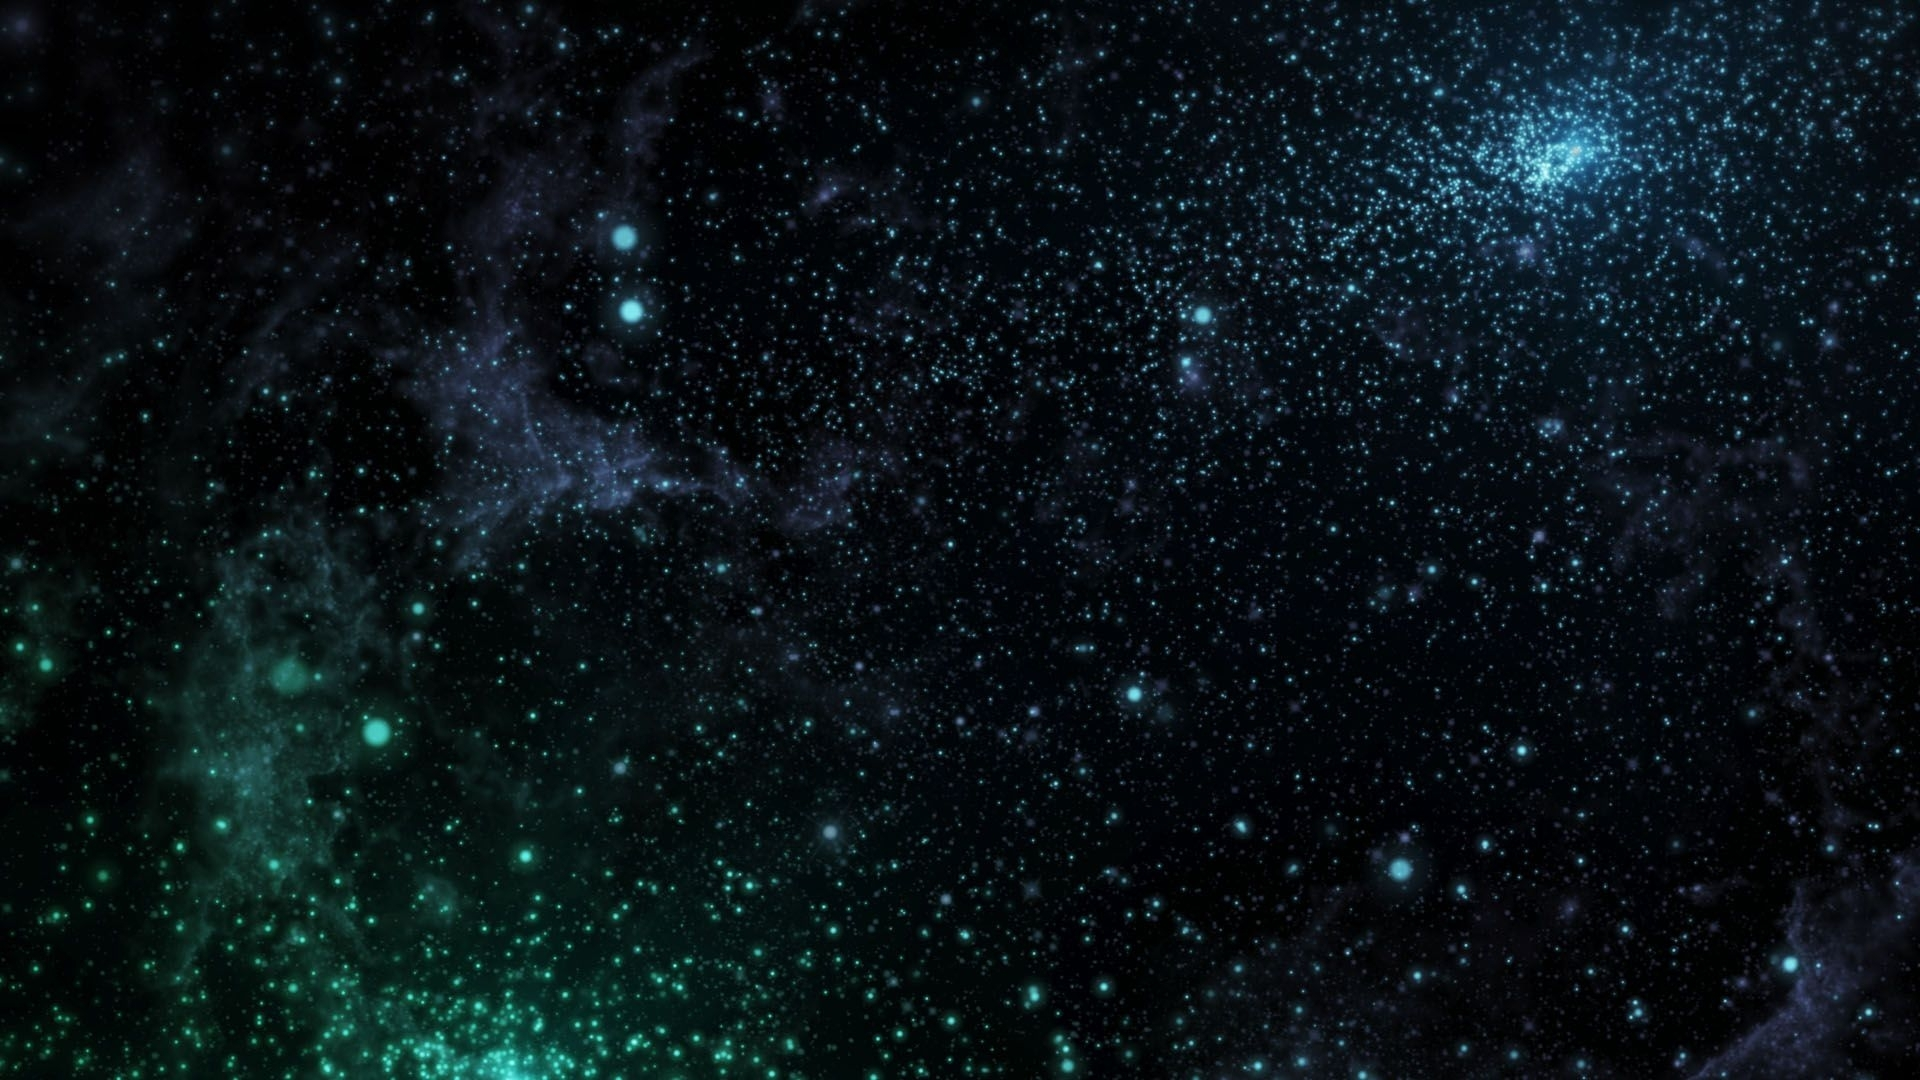 10 best deep space wallpaper 1920x1080 full hd 1080p for pc background